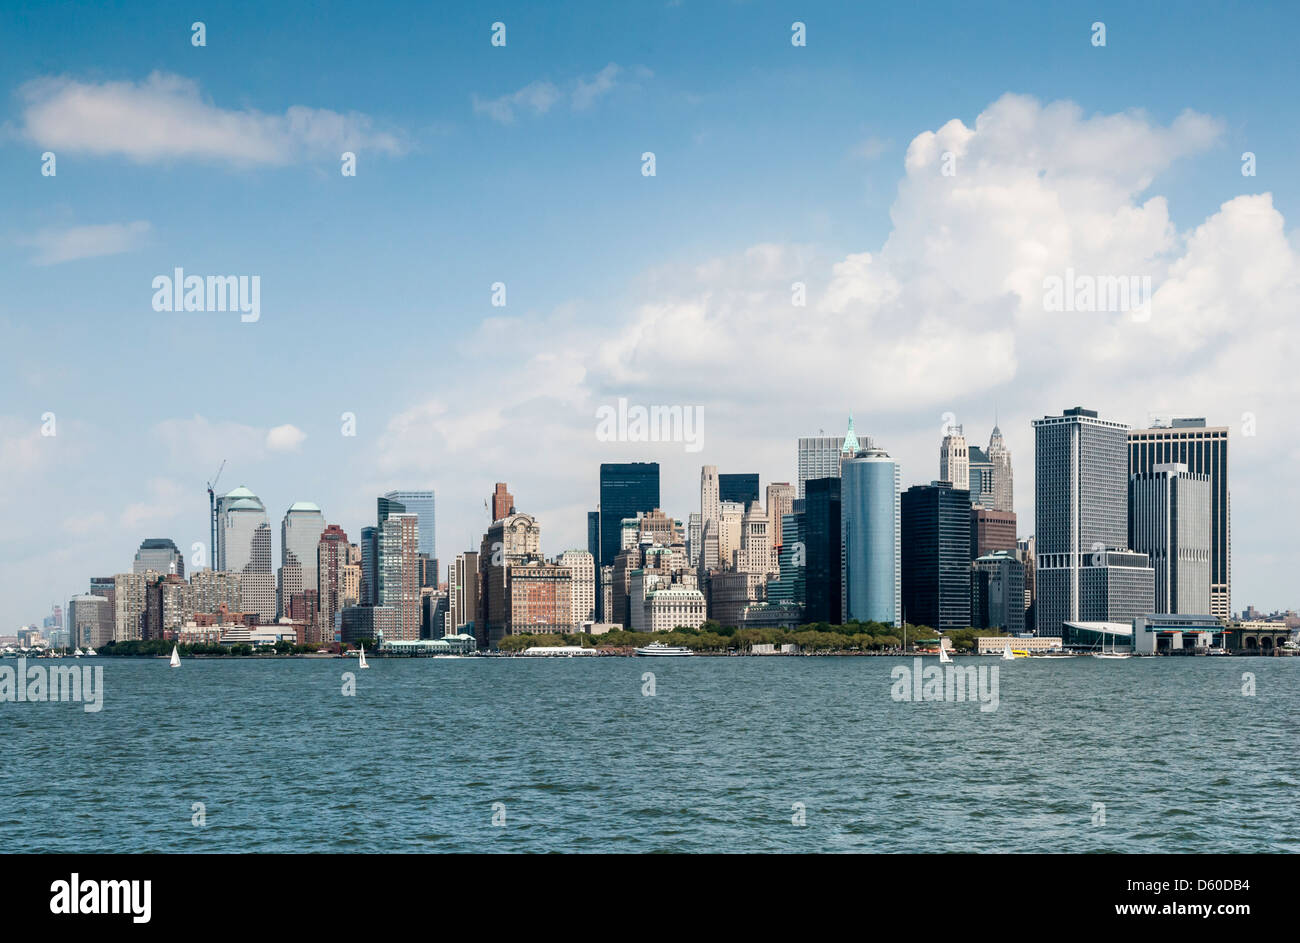 Downtown Manhattan Skyline without the former World Trade Center, New York City - Stock Image